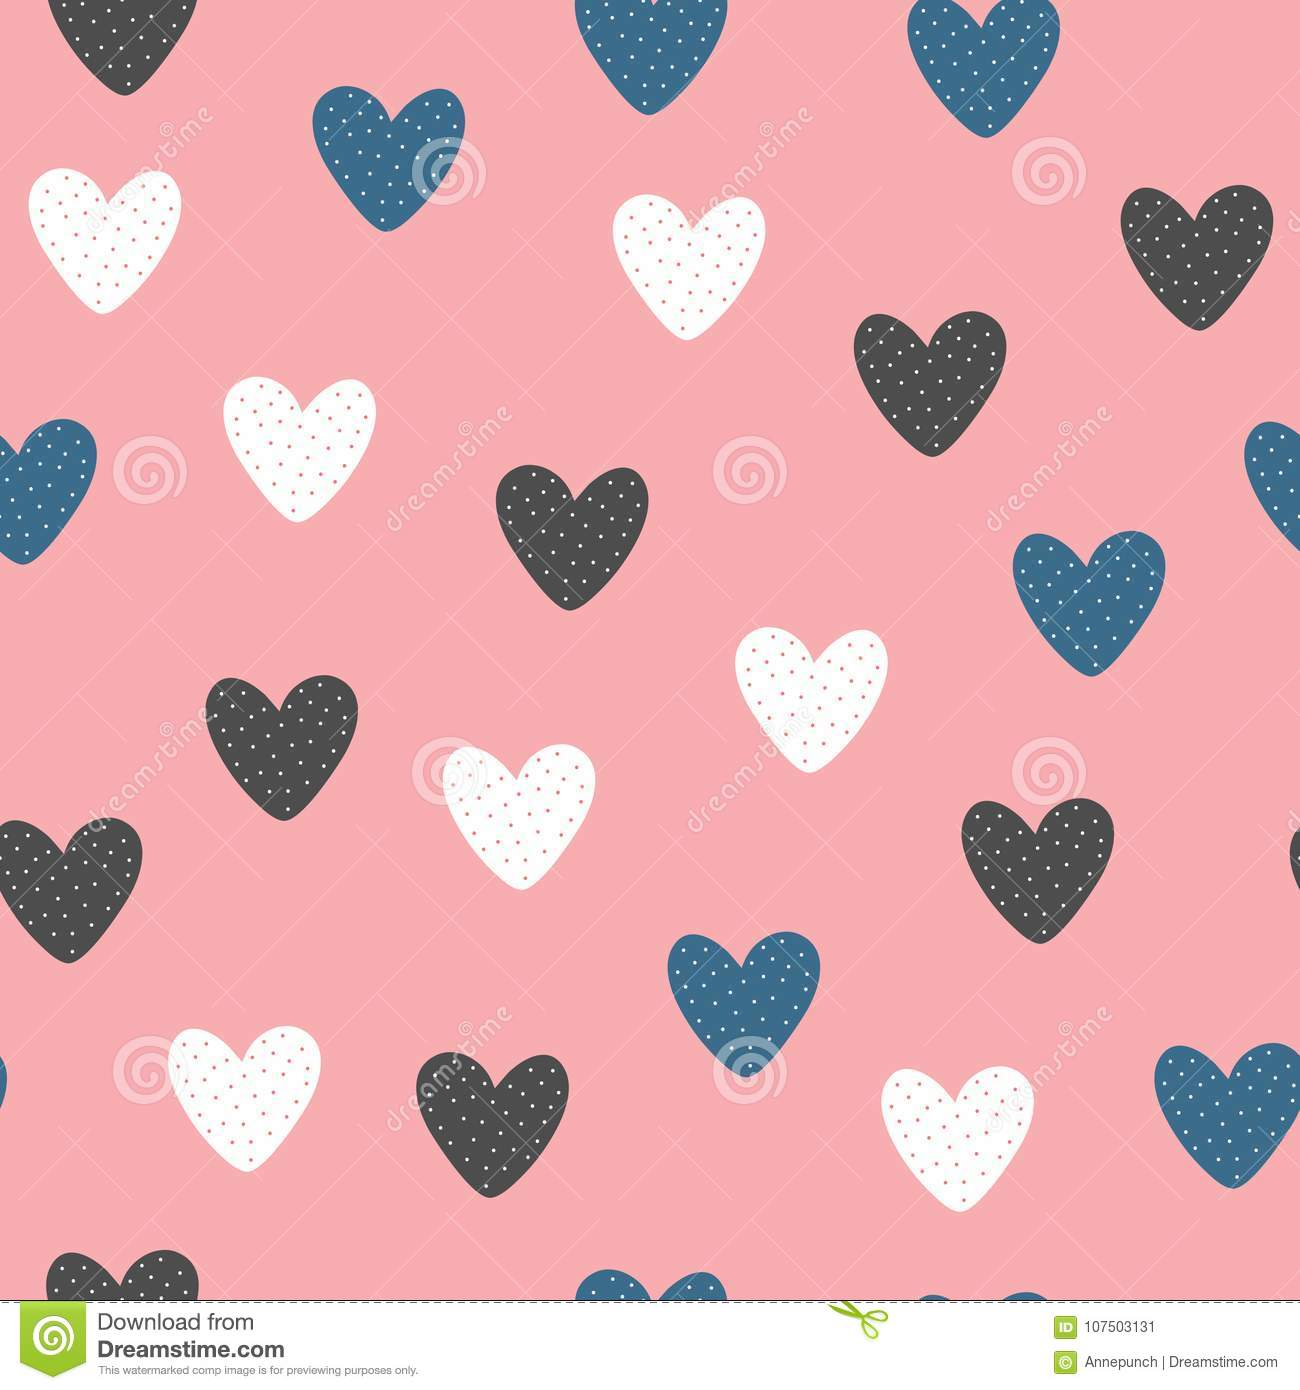 Fashionable seamless pattern with cute hearts drawn by hand.